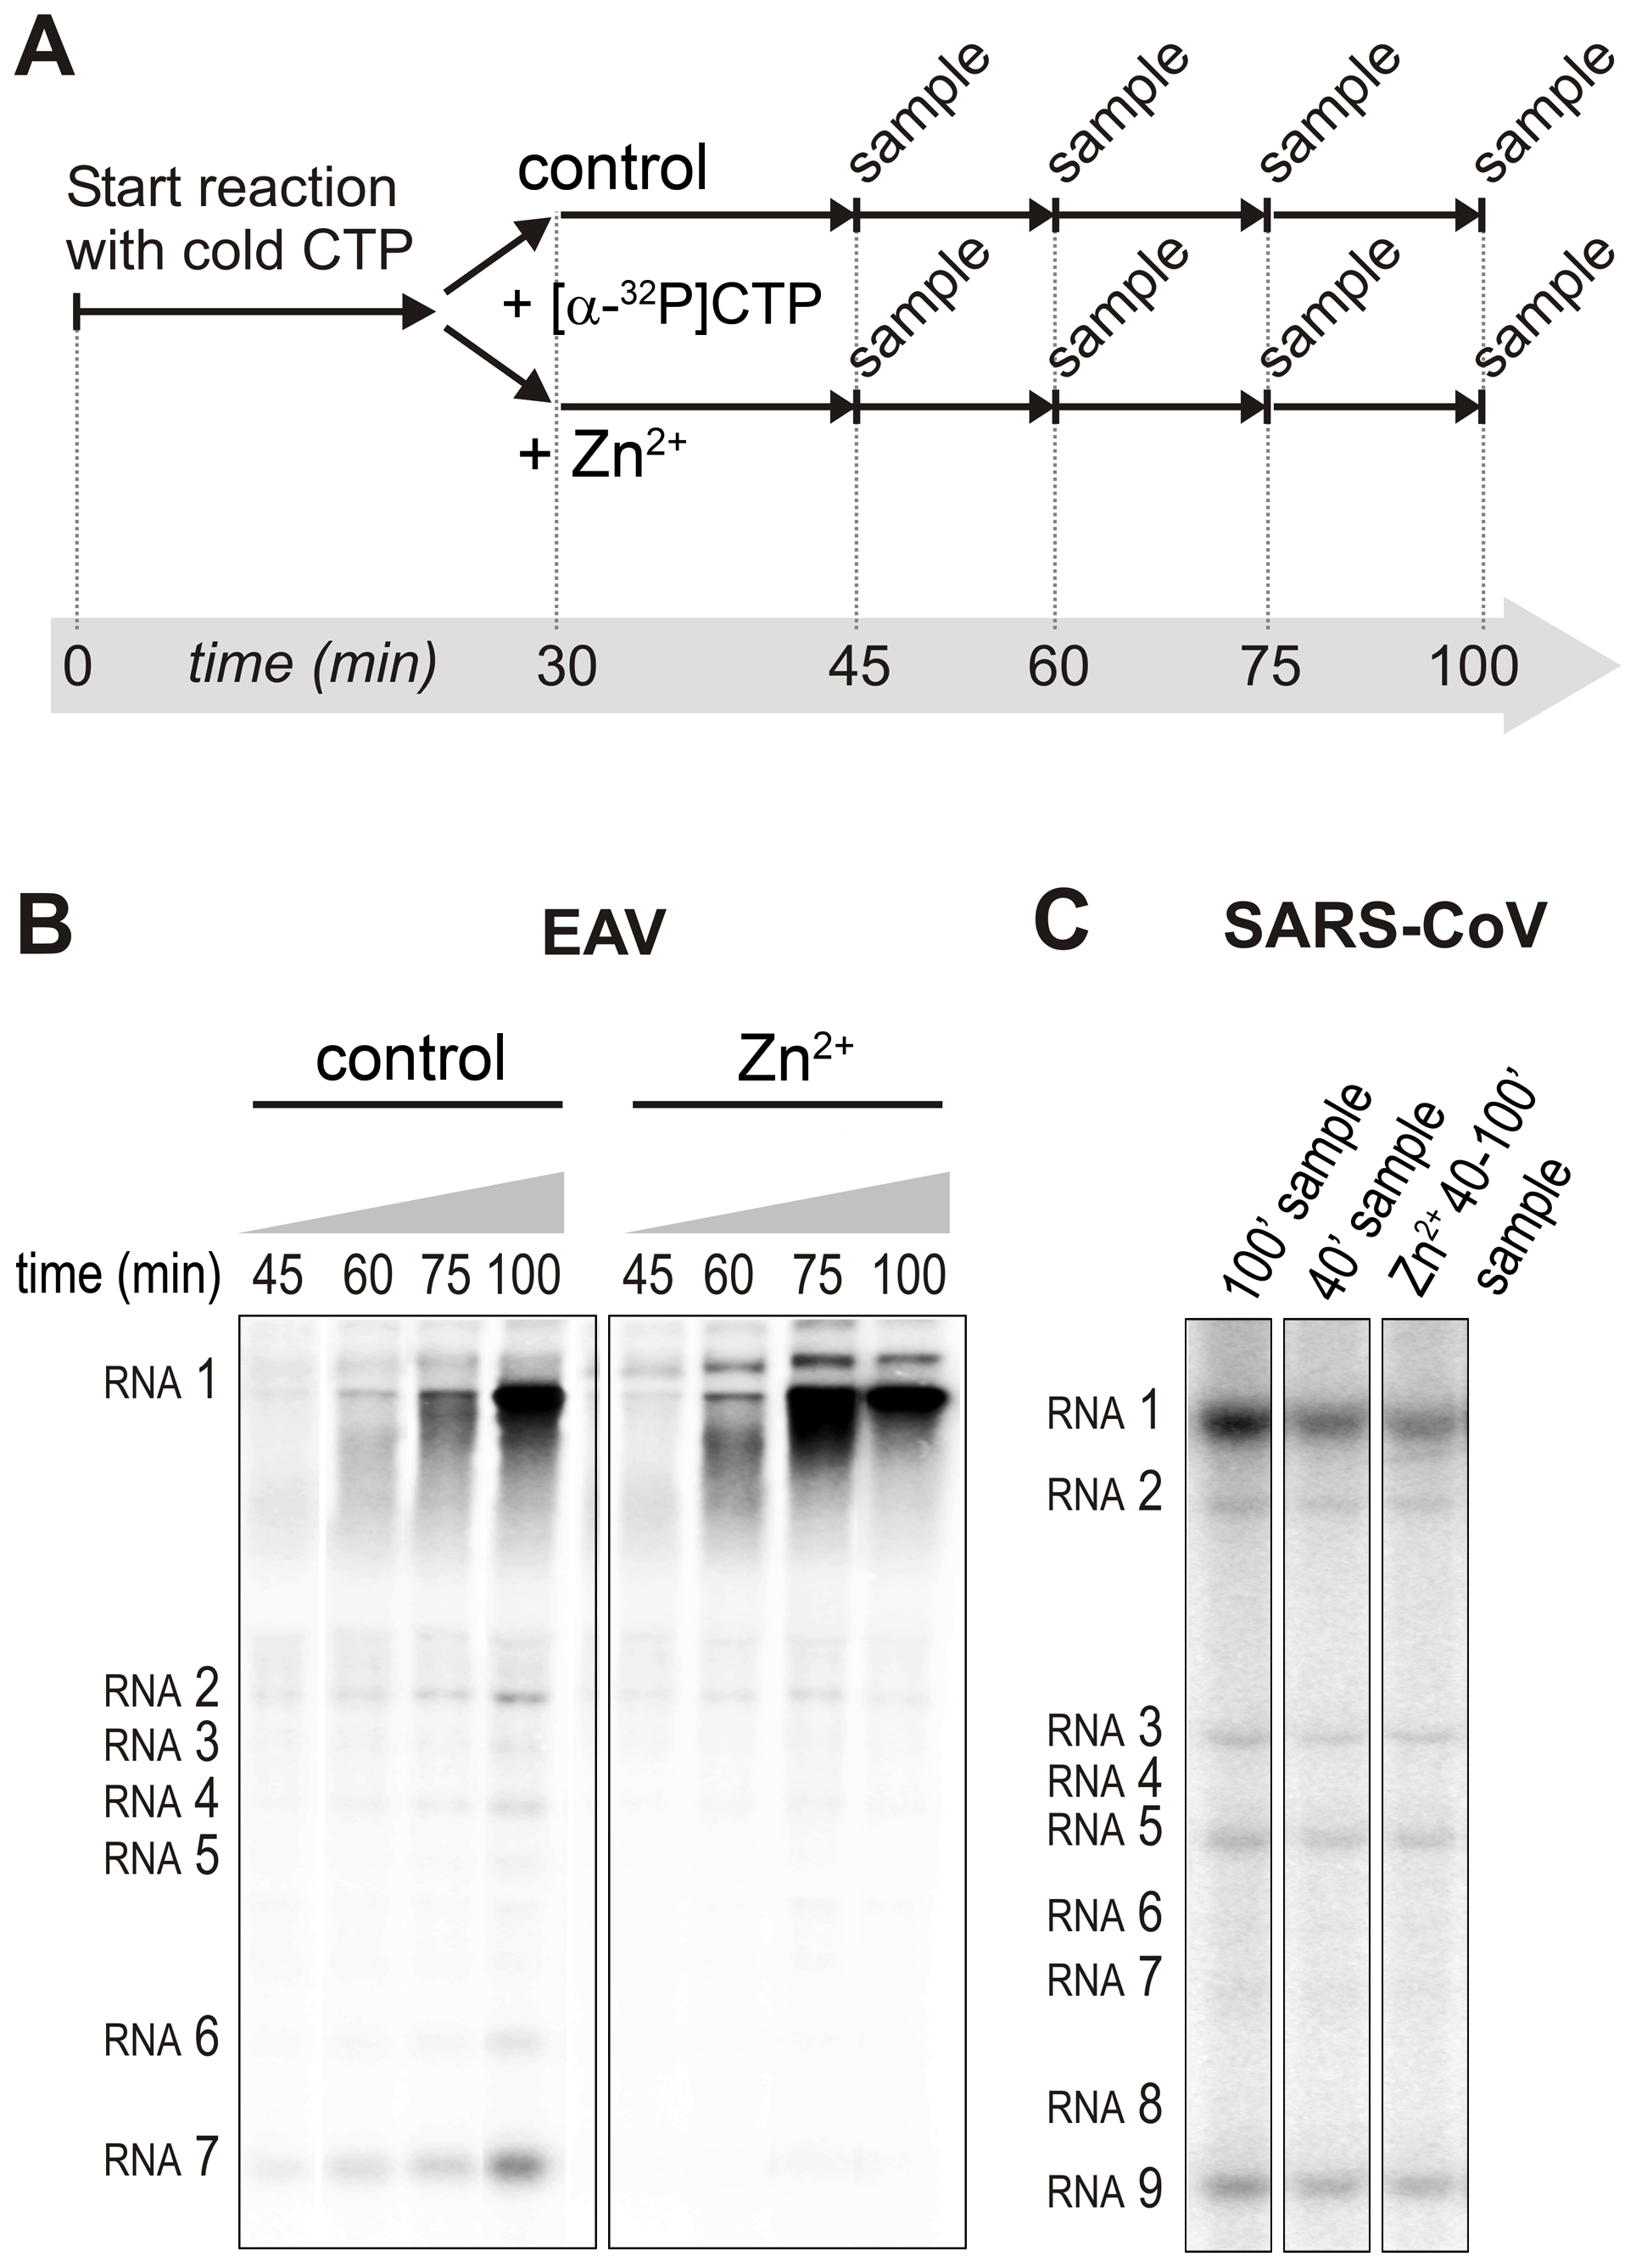 Effect of Zn<sup>2+</sup> on initiation and elongation in <i>in vitro</i> assays with isolated EAV and SARS-CoV RTCs.